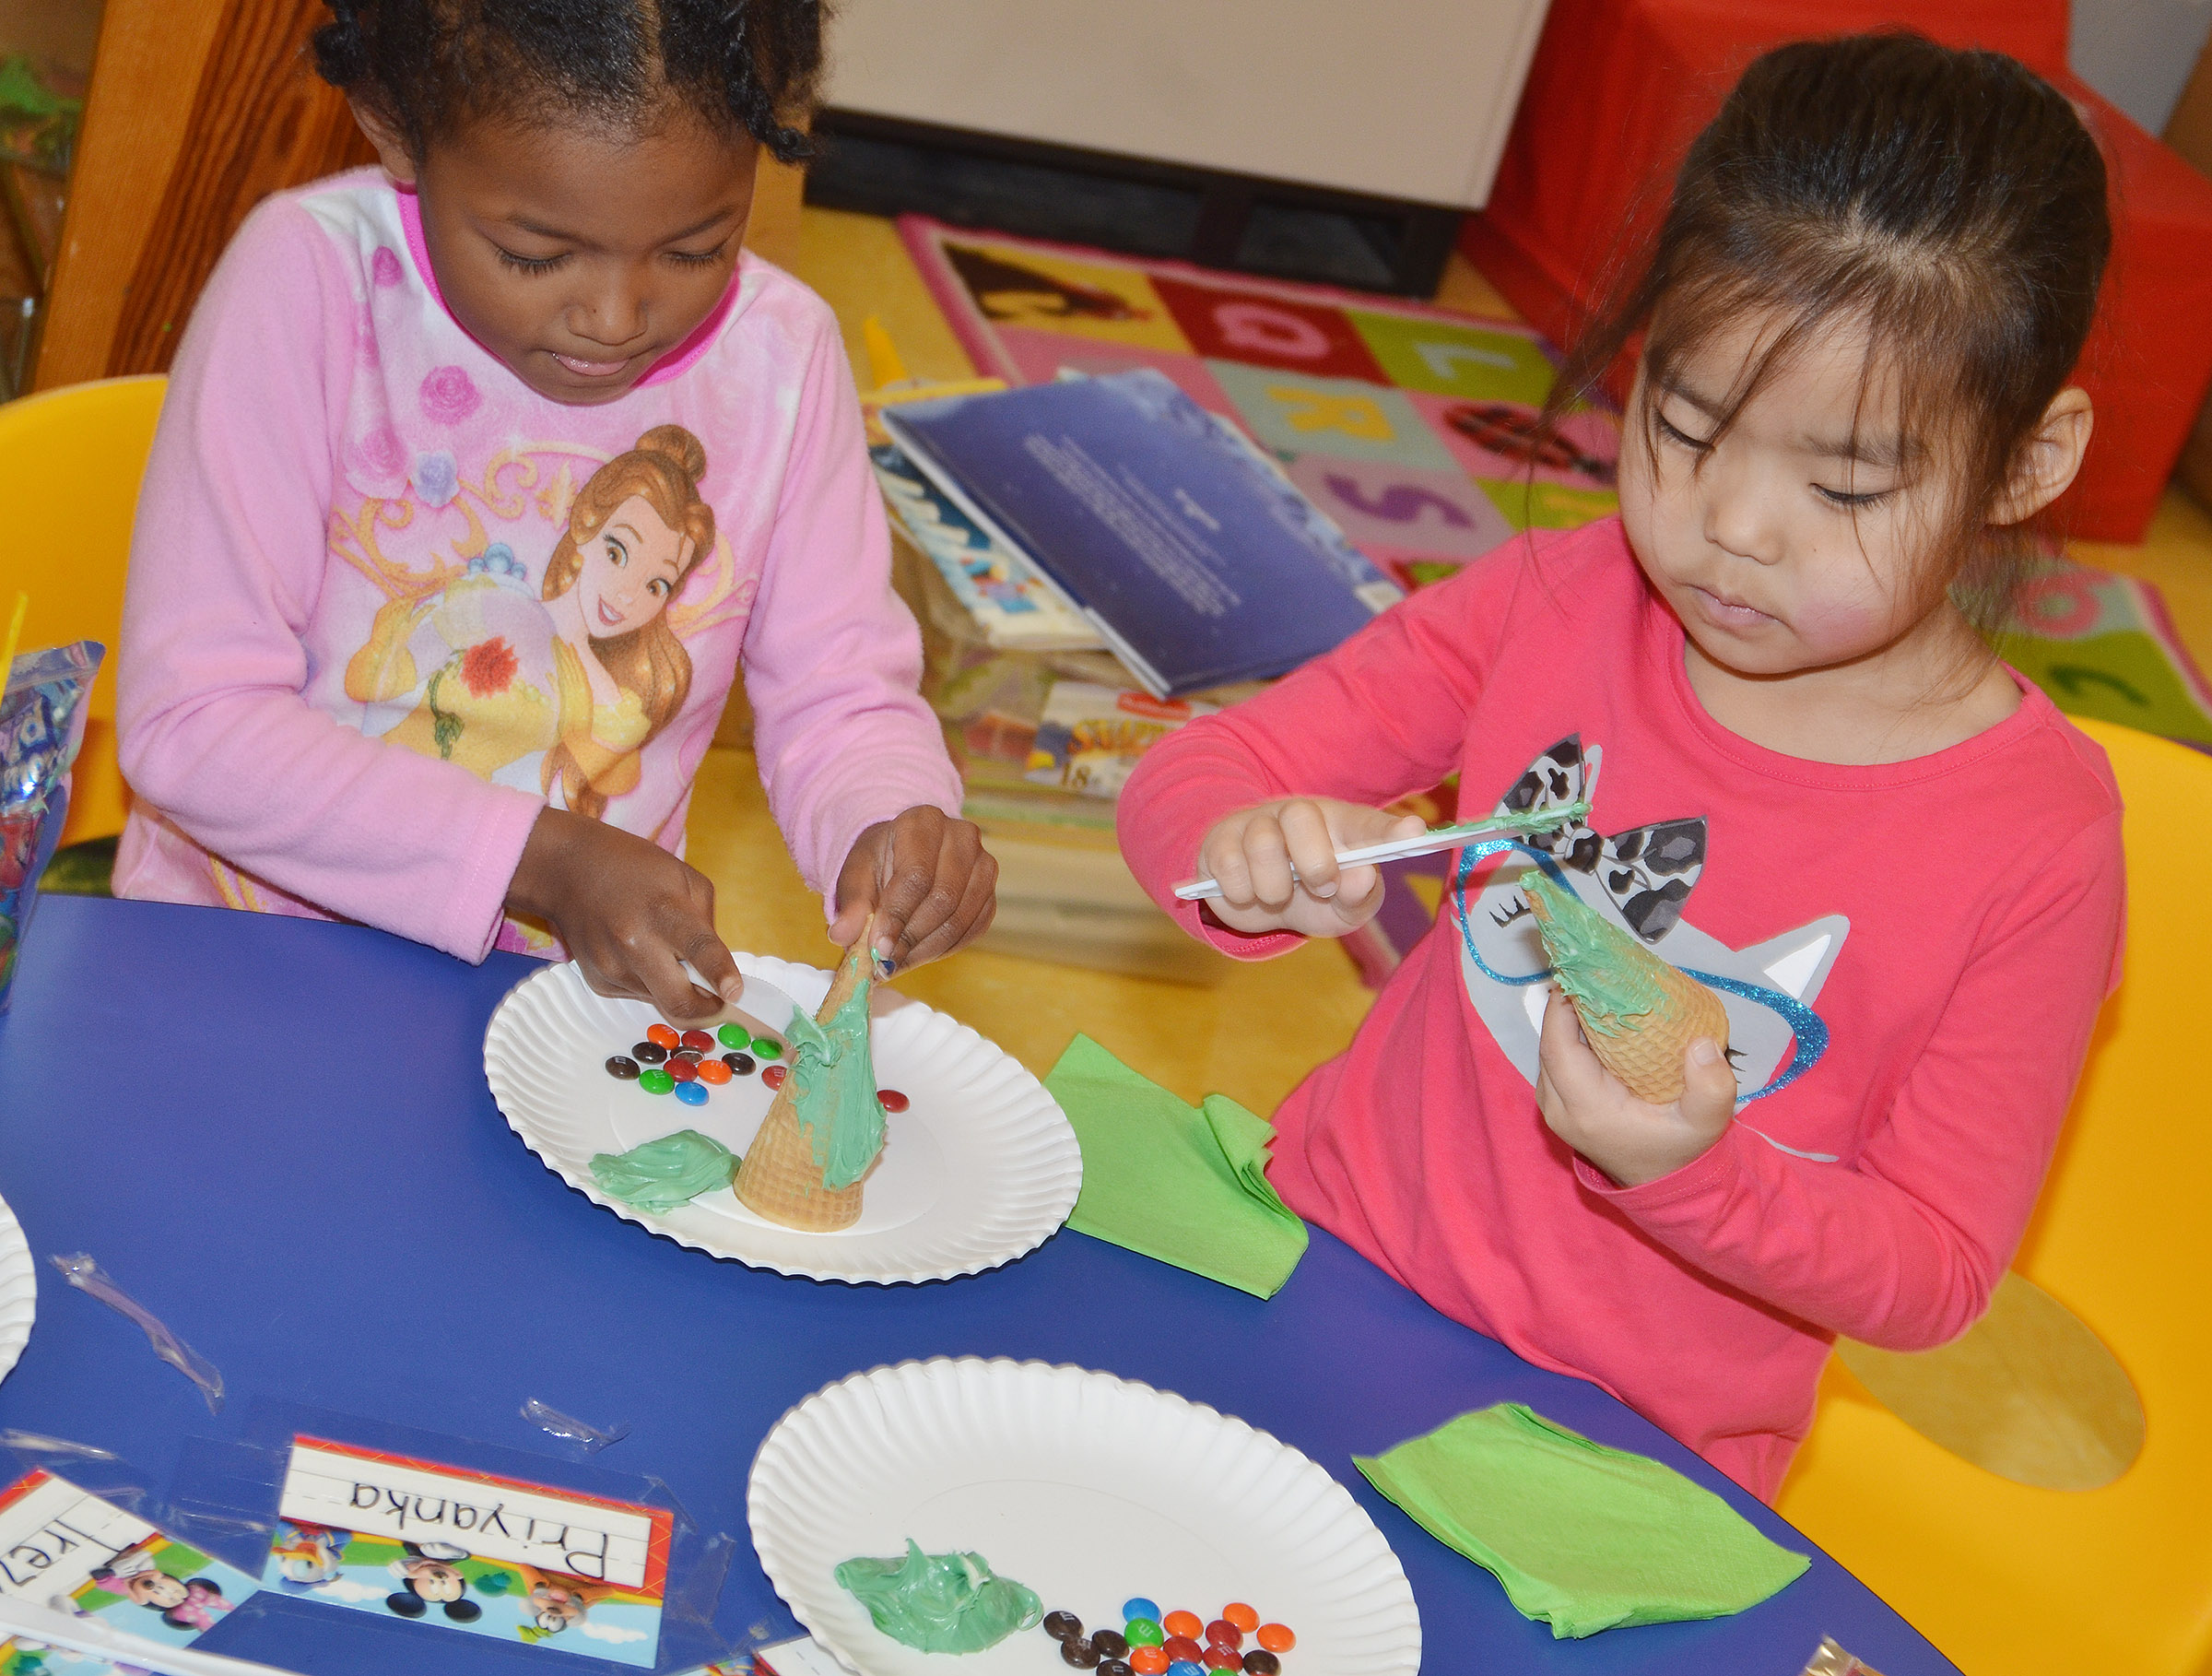 CES preschool students Priyanka Flores, at left, and Marla Bat decorate their edible Christmas trees.